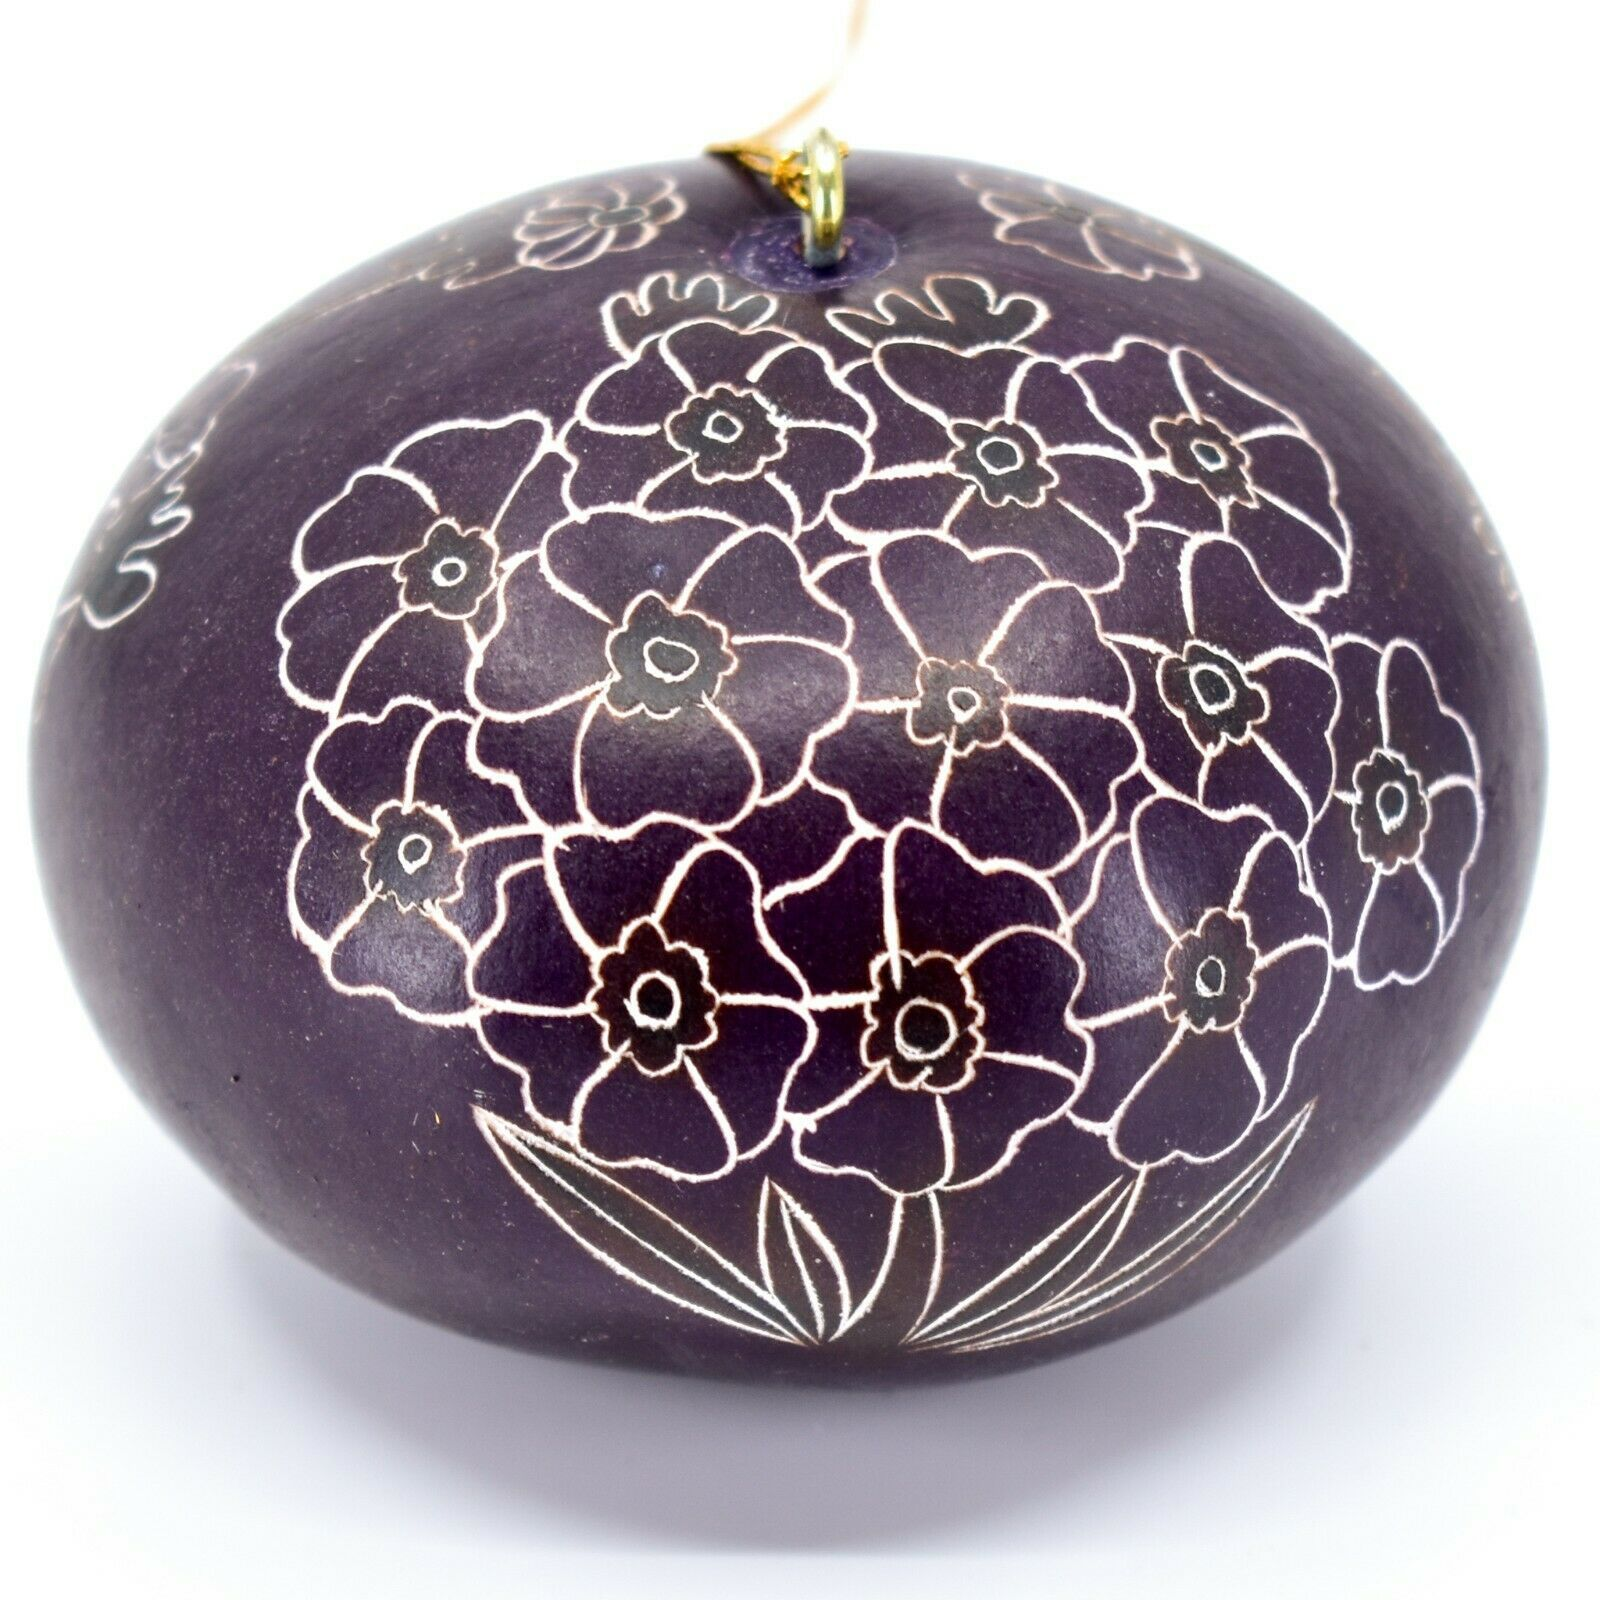 Handcrafted Carved Gourd Art Purple Primose Flower Floral Ornament Made in Peru